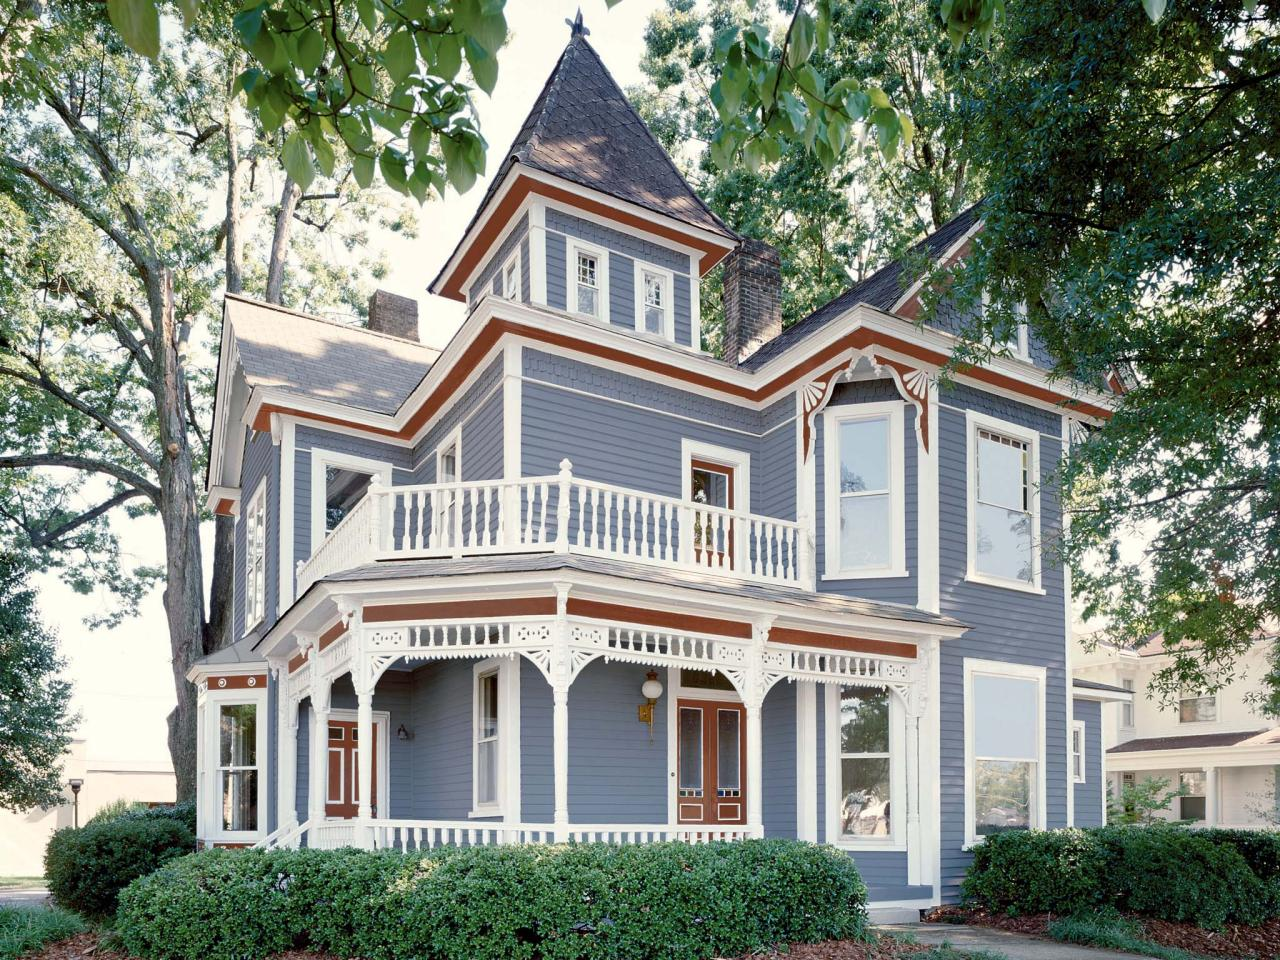 Guide to Home Exterior Paint Colors - Home and Office Painting Serv...